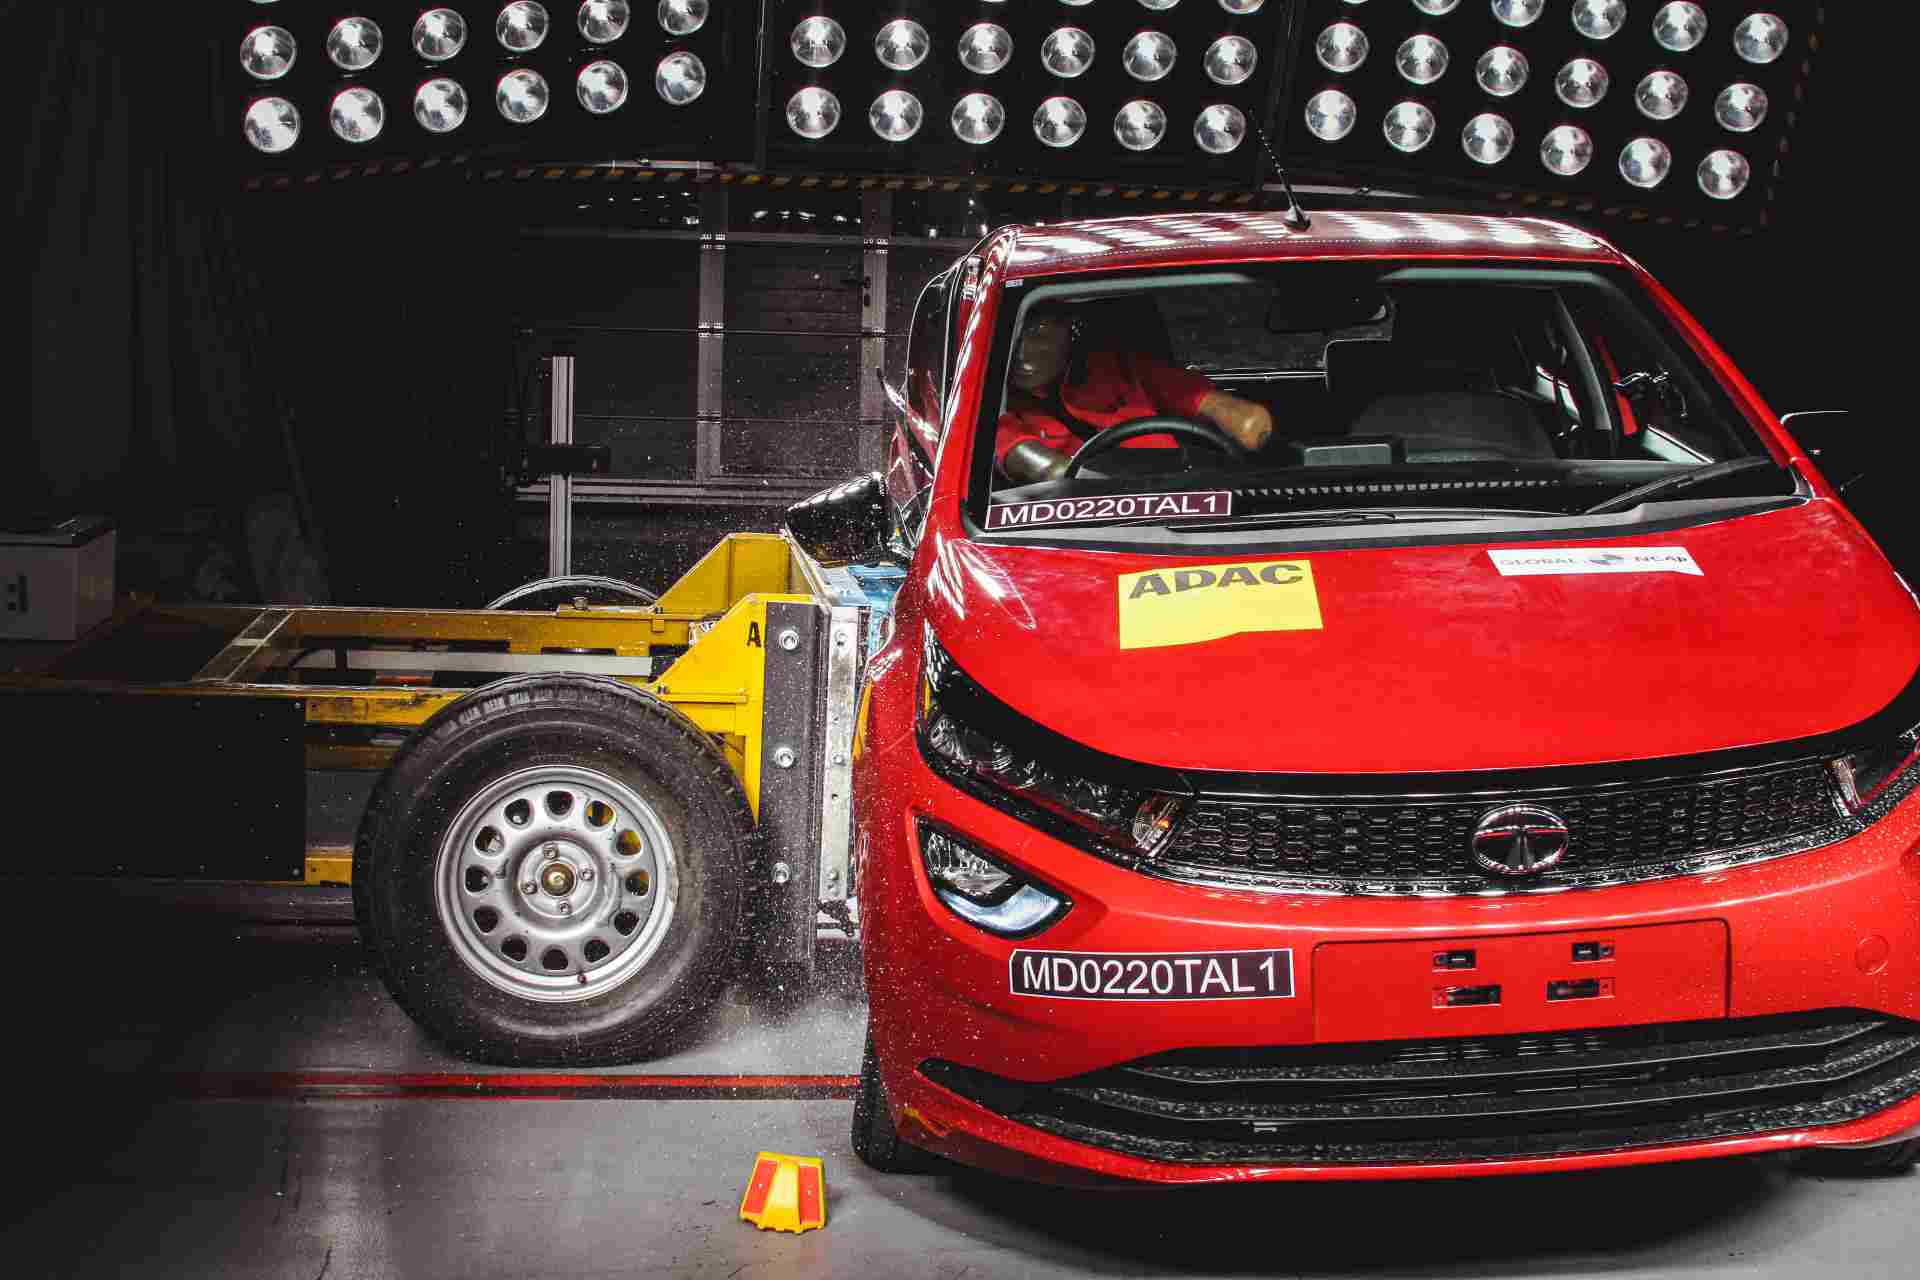 The Tata Altroz remains the only premium hatchback on sale in India to be awarded five stars by Global NCAP. Image: Global NCAP